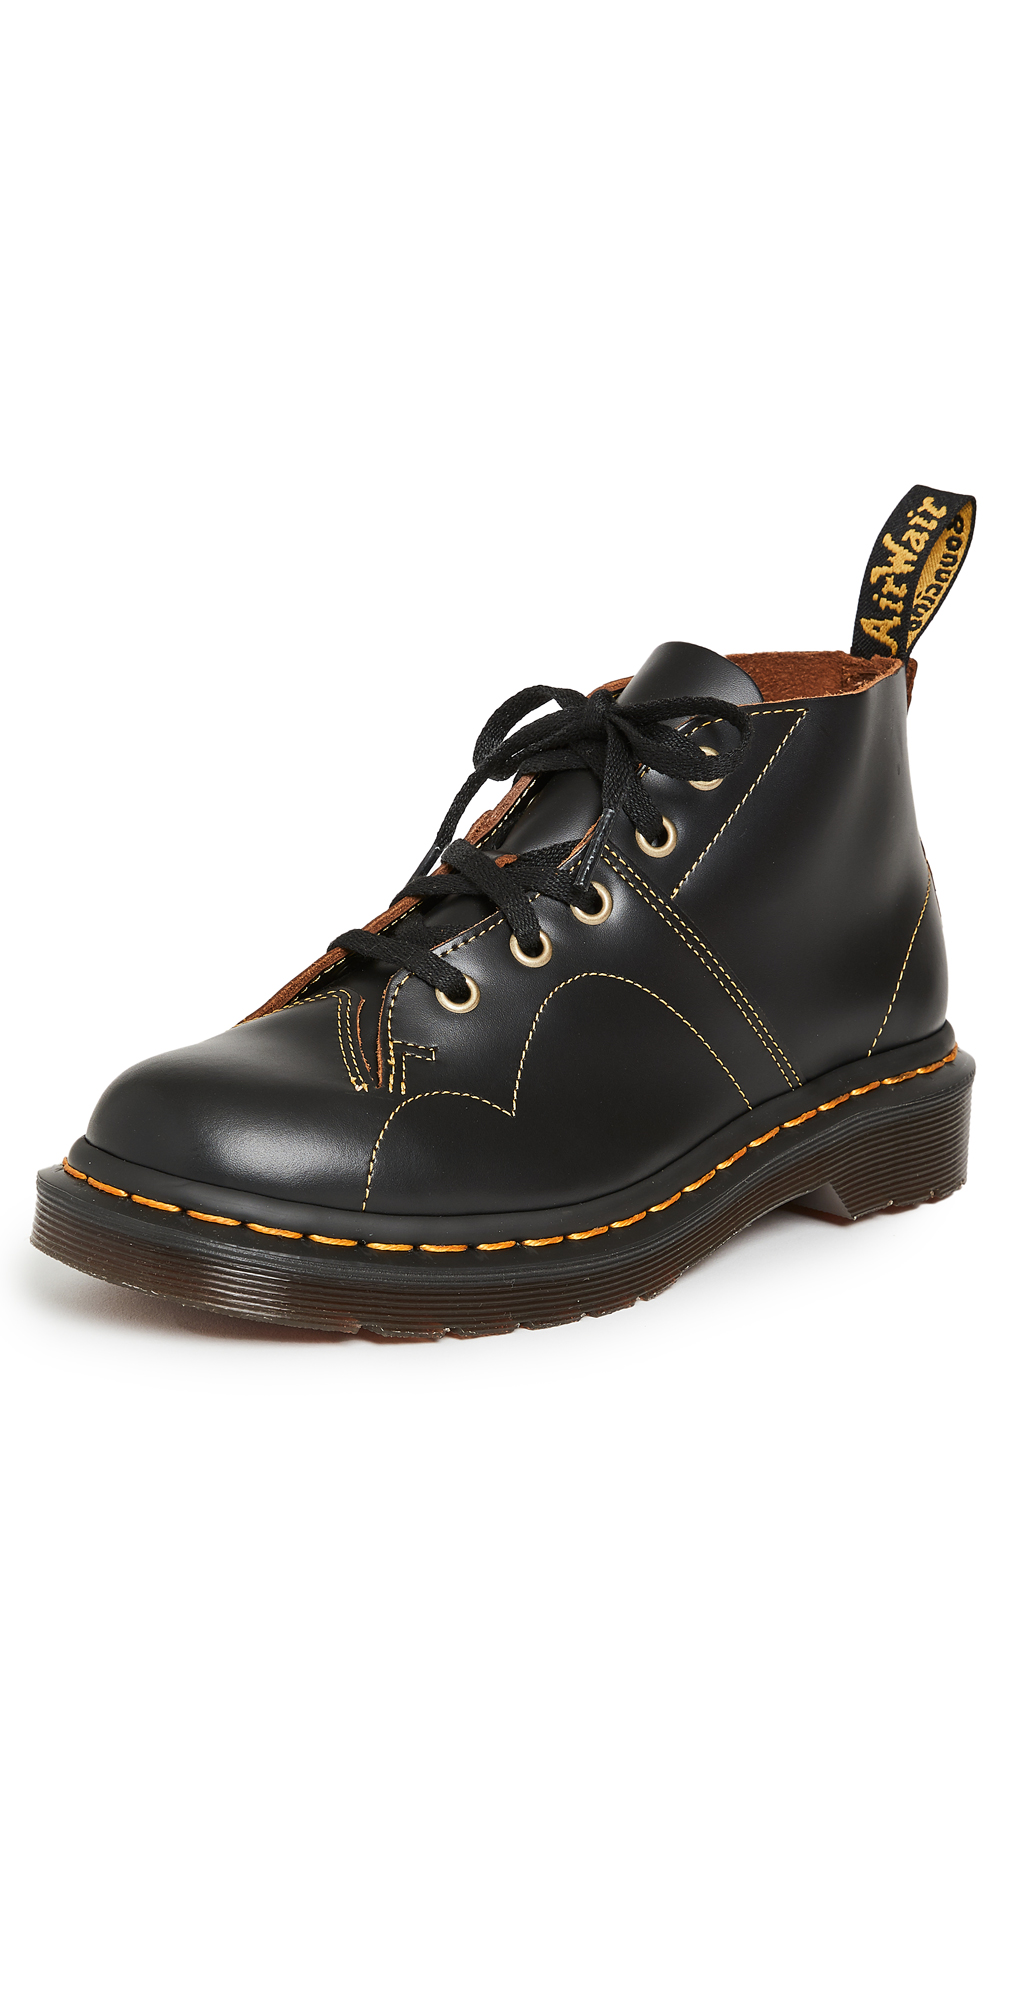 Dr. Martens Leathers CHURCH VINTAGE MONKEY BOOTS